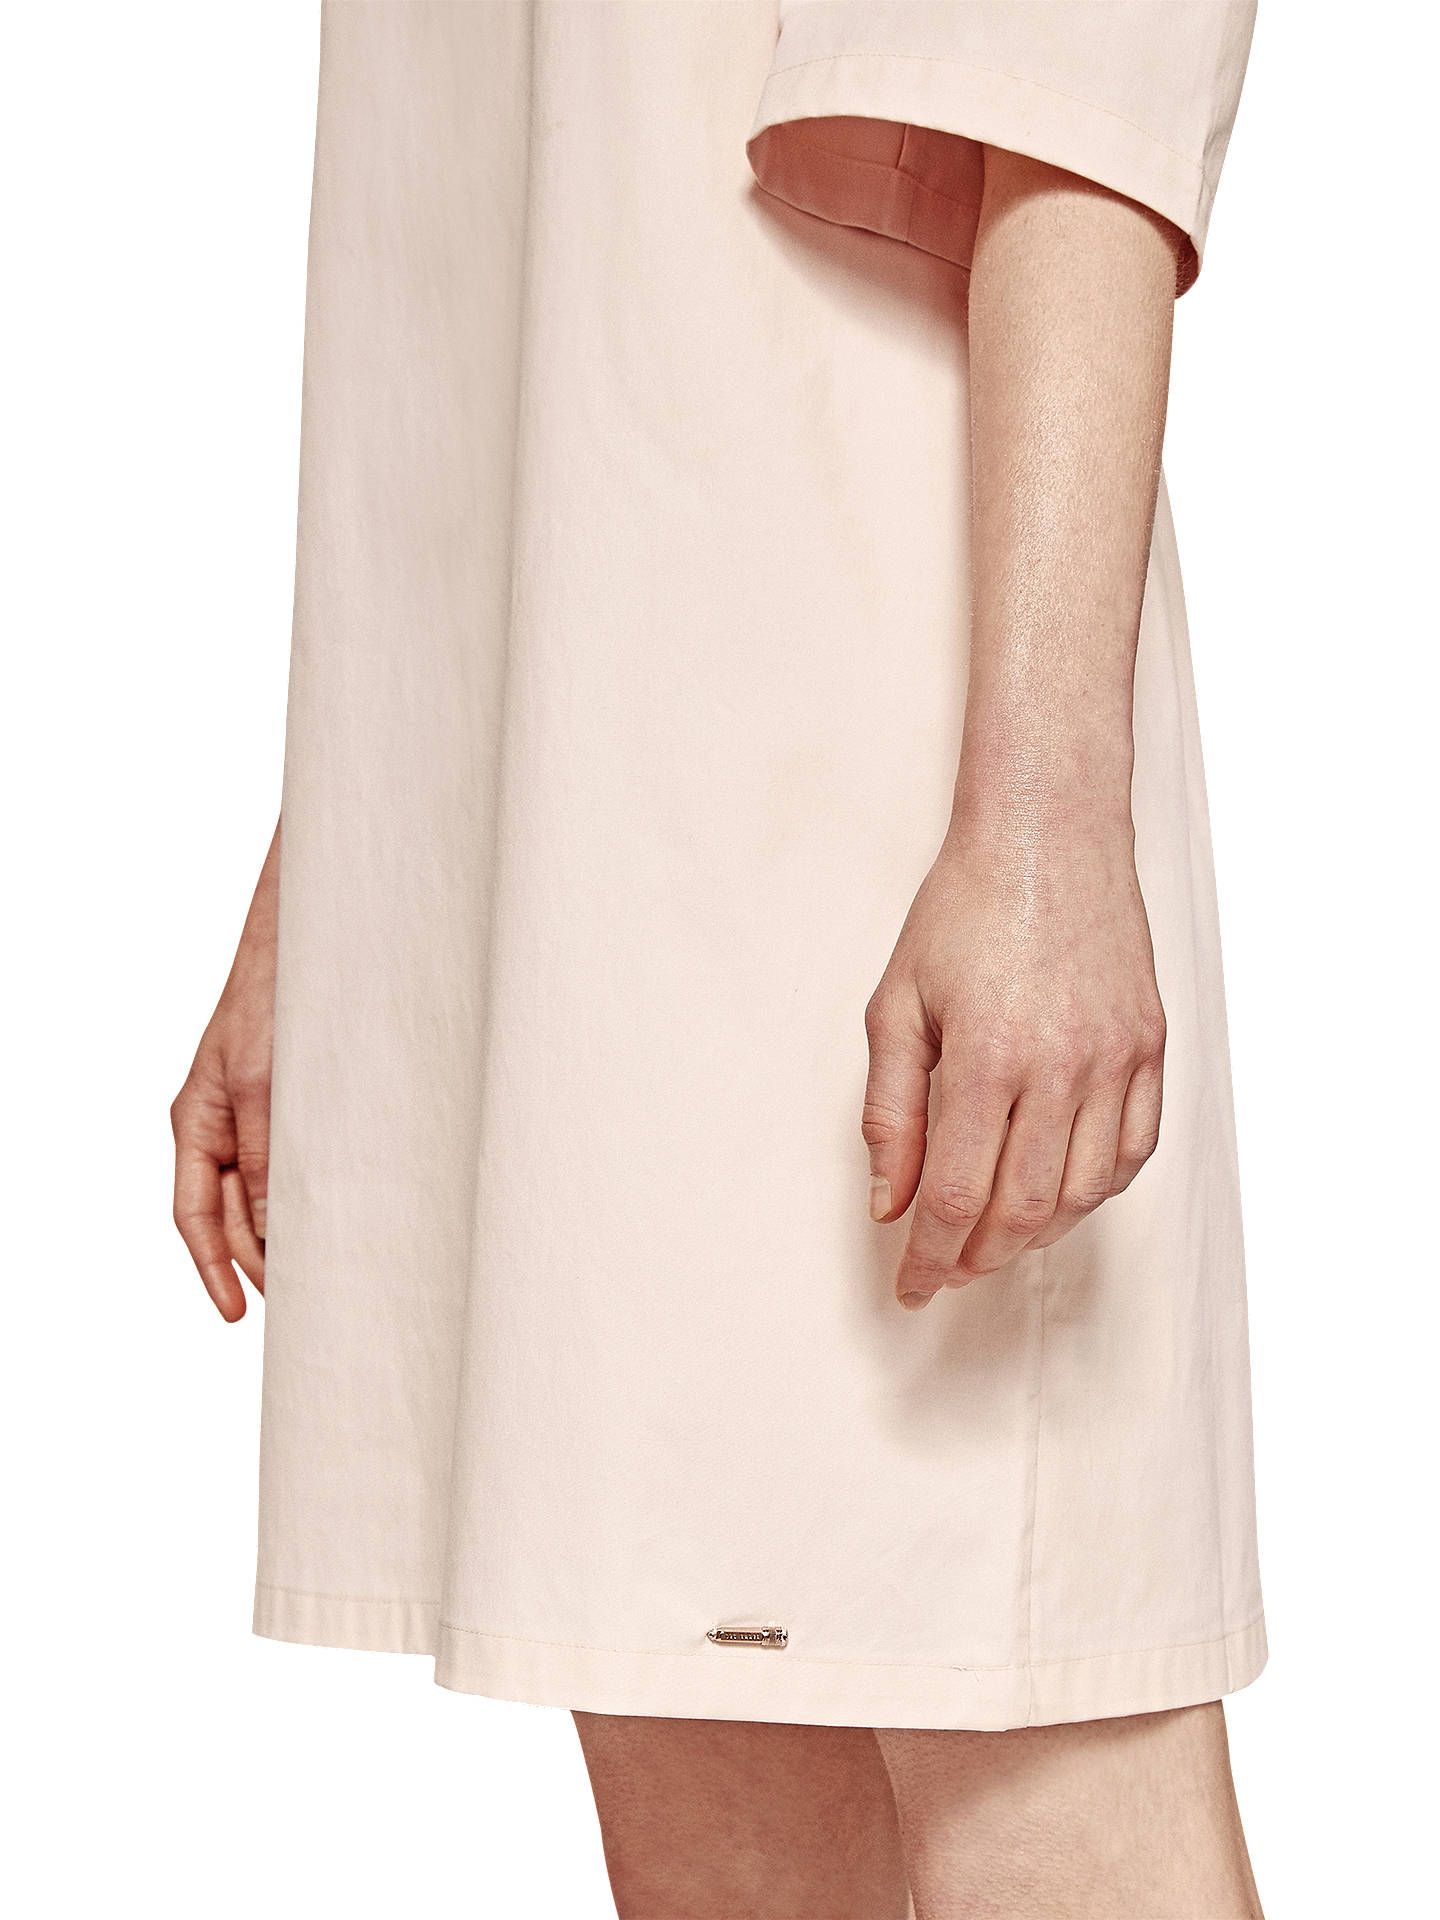 1889127a567c6 ... Buy Ted Baker Colour By Numbers Janoo Cold Shoulder Dress